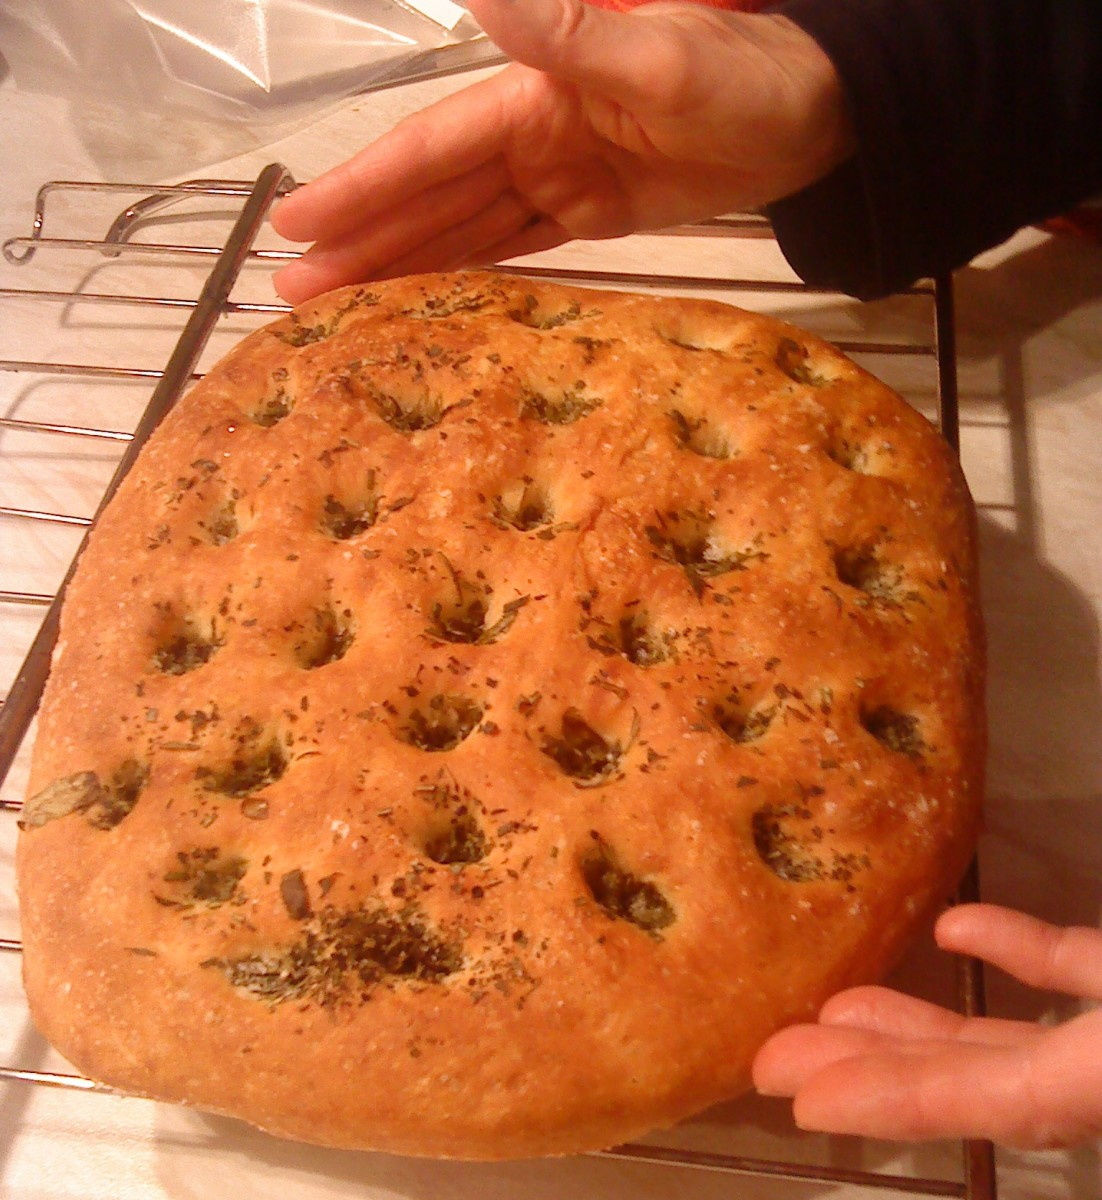 Make Delicious Rosemary Herb Focaccia Bread with this Simple Recipe